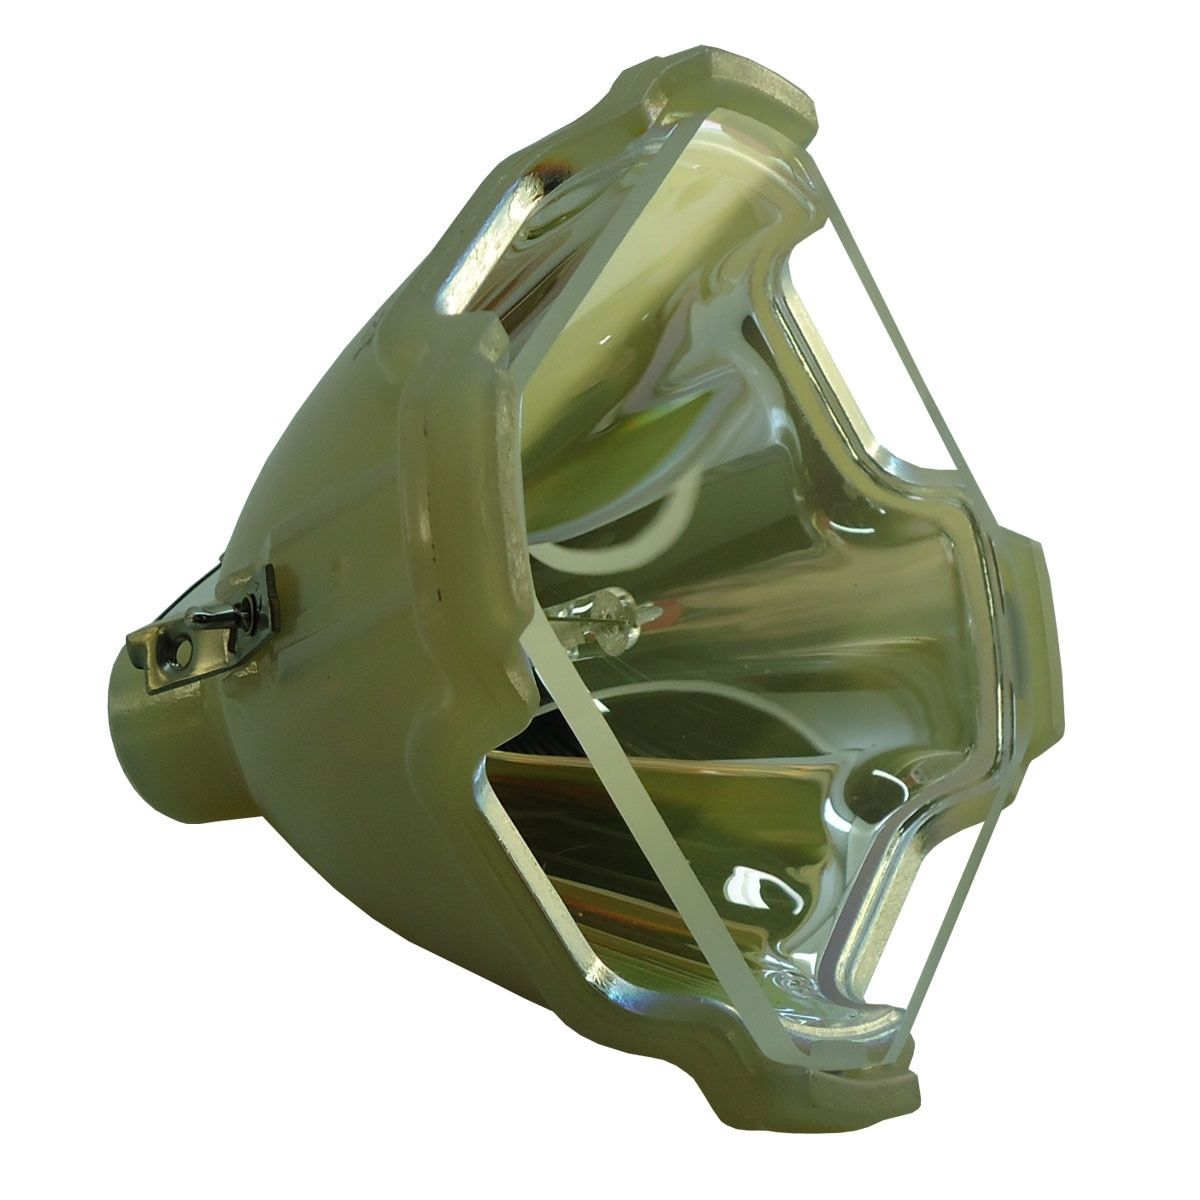 Compatible Bare Bulb 003-120242-01 for CHRISTIE LX380 LX450 LX300 VIVID LX380 / VIVID LX450 Projector Lamp Bulb without housing compatible bare bulb lv lp06 4642a001 for canon lv 7525 lv 7525e lv 7535 lv 7535u projector lamp bulb without housing